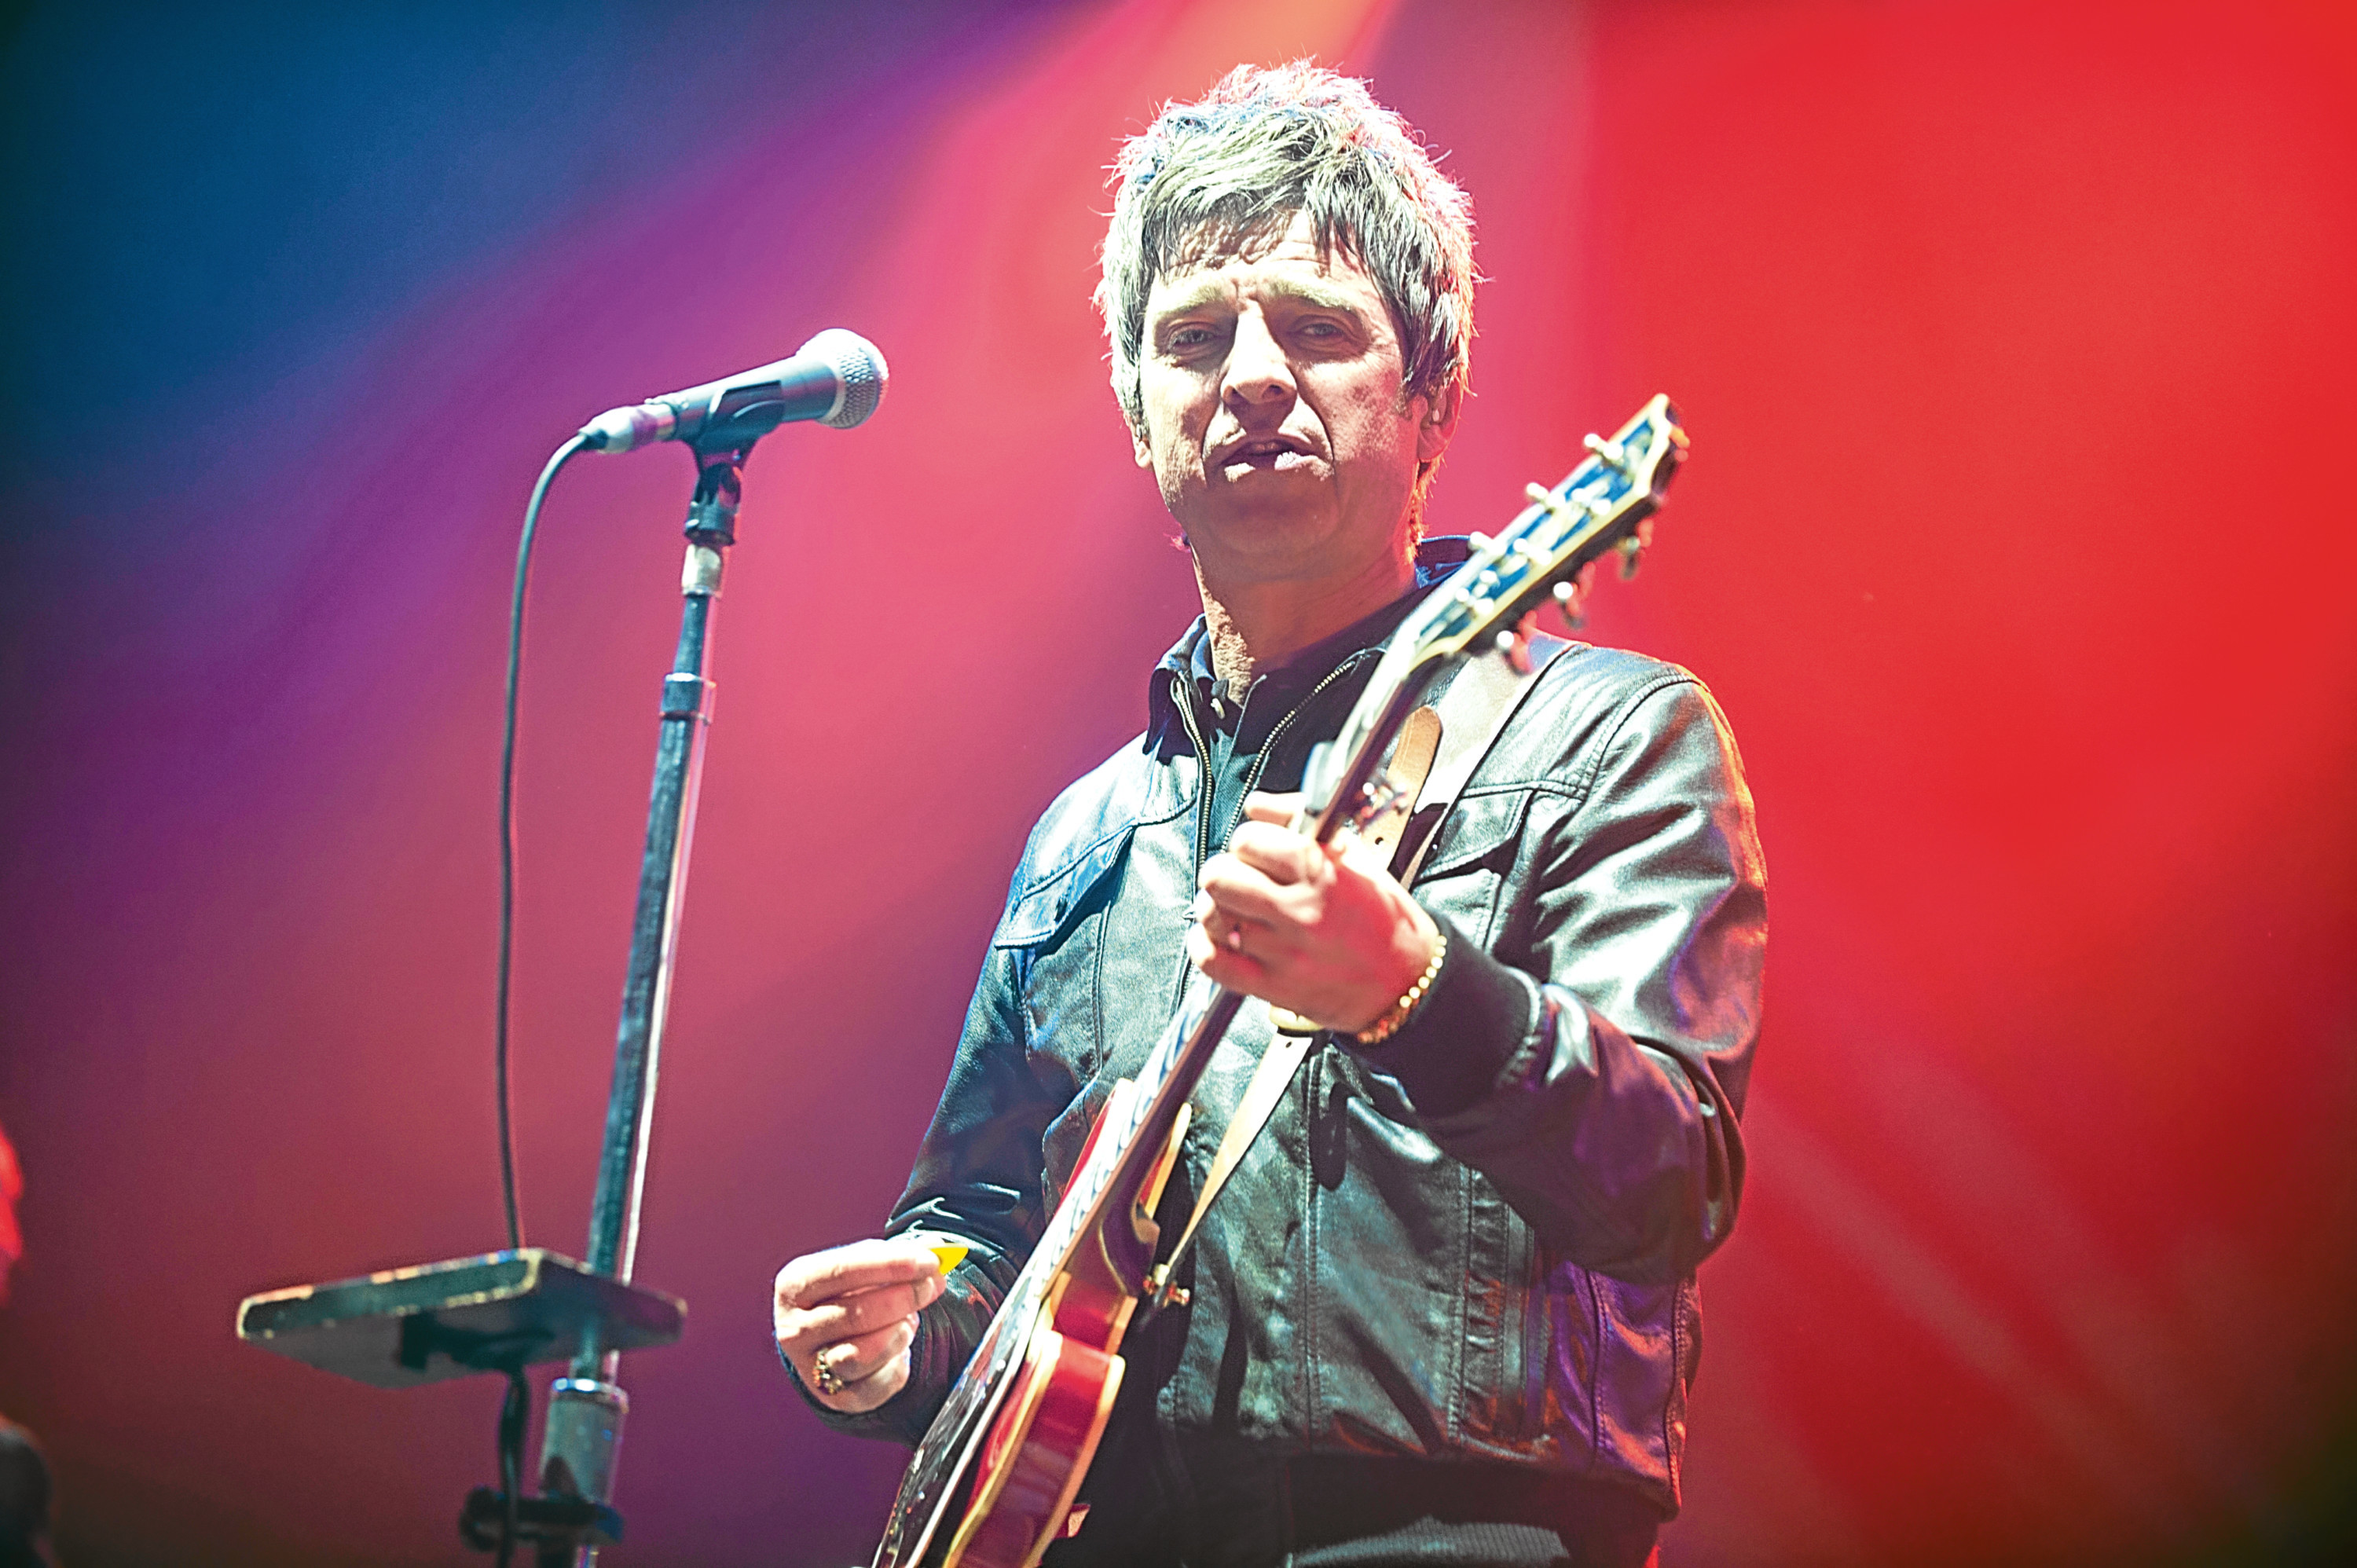 Noel Gallagher's High Flying Birds perform at the AECC.